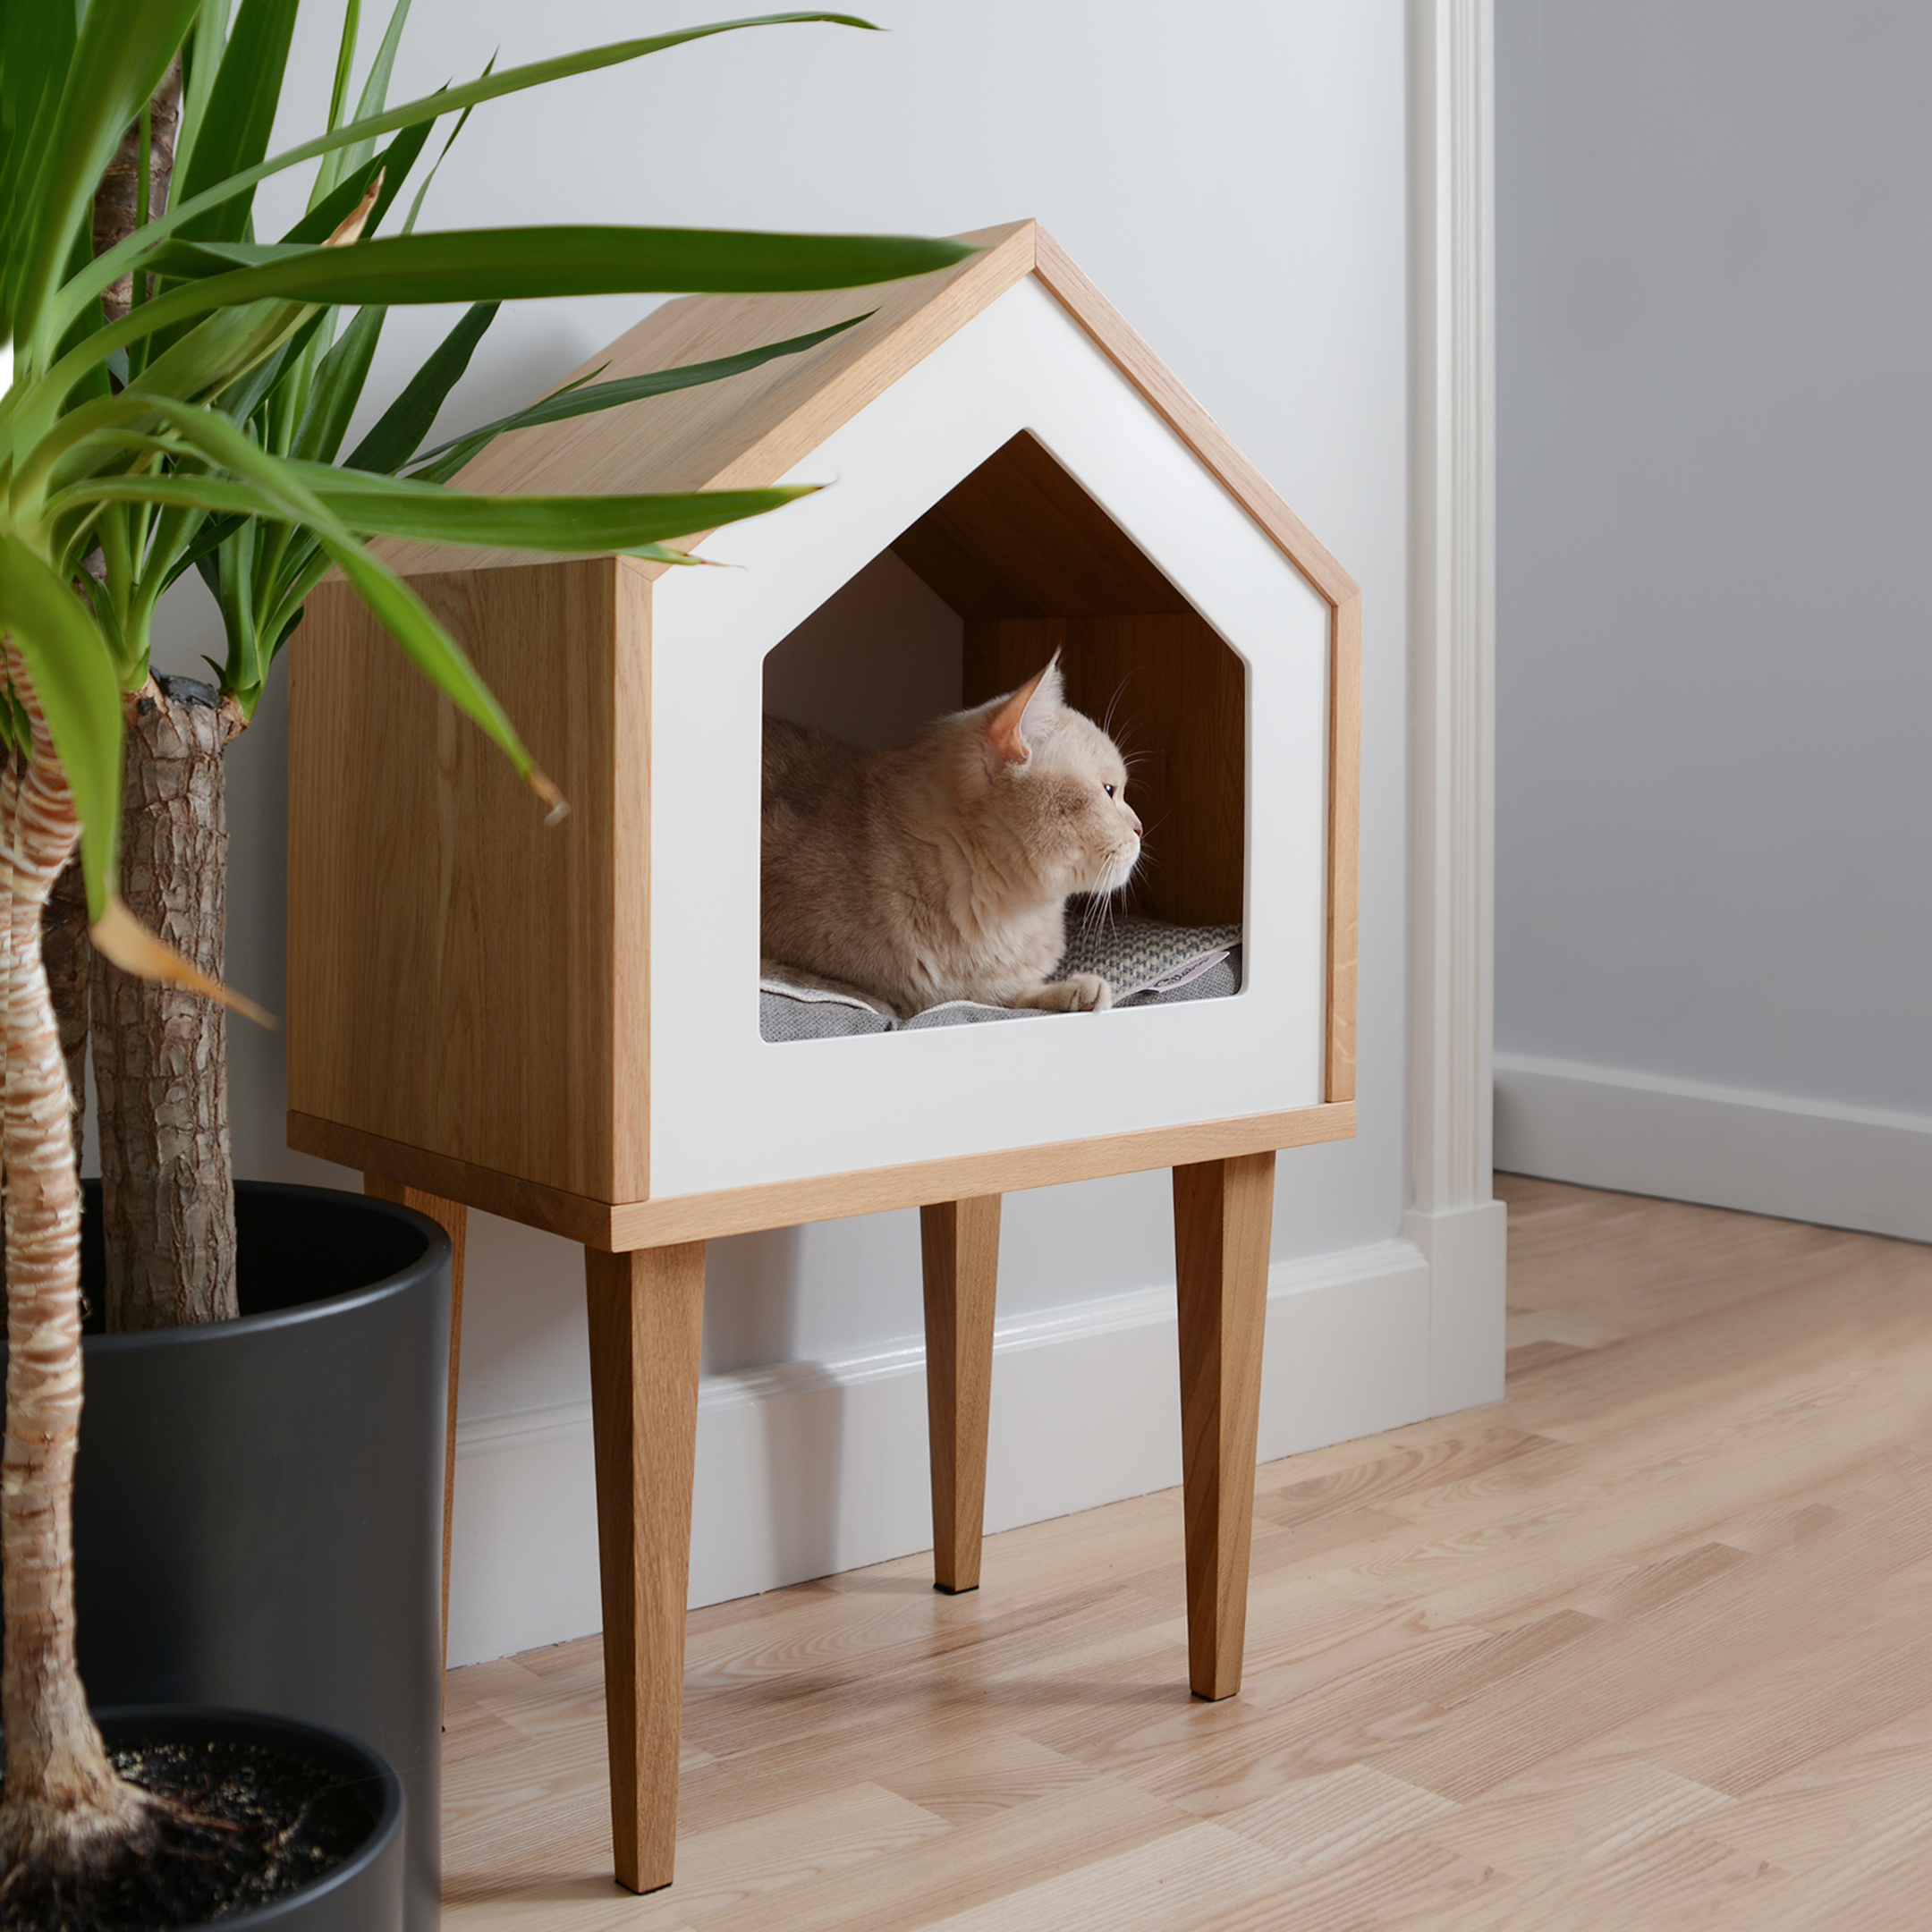 Premium Cat House Cat House Oak Wood Cat House Cat Tree Pet Cot Cat Bed Pet Bed Indoor Cat House Pet Furniture Design Cat House Diy Cat Houses Indoor Cat Room